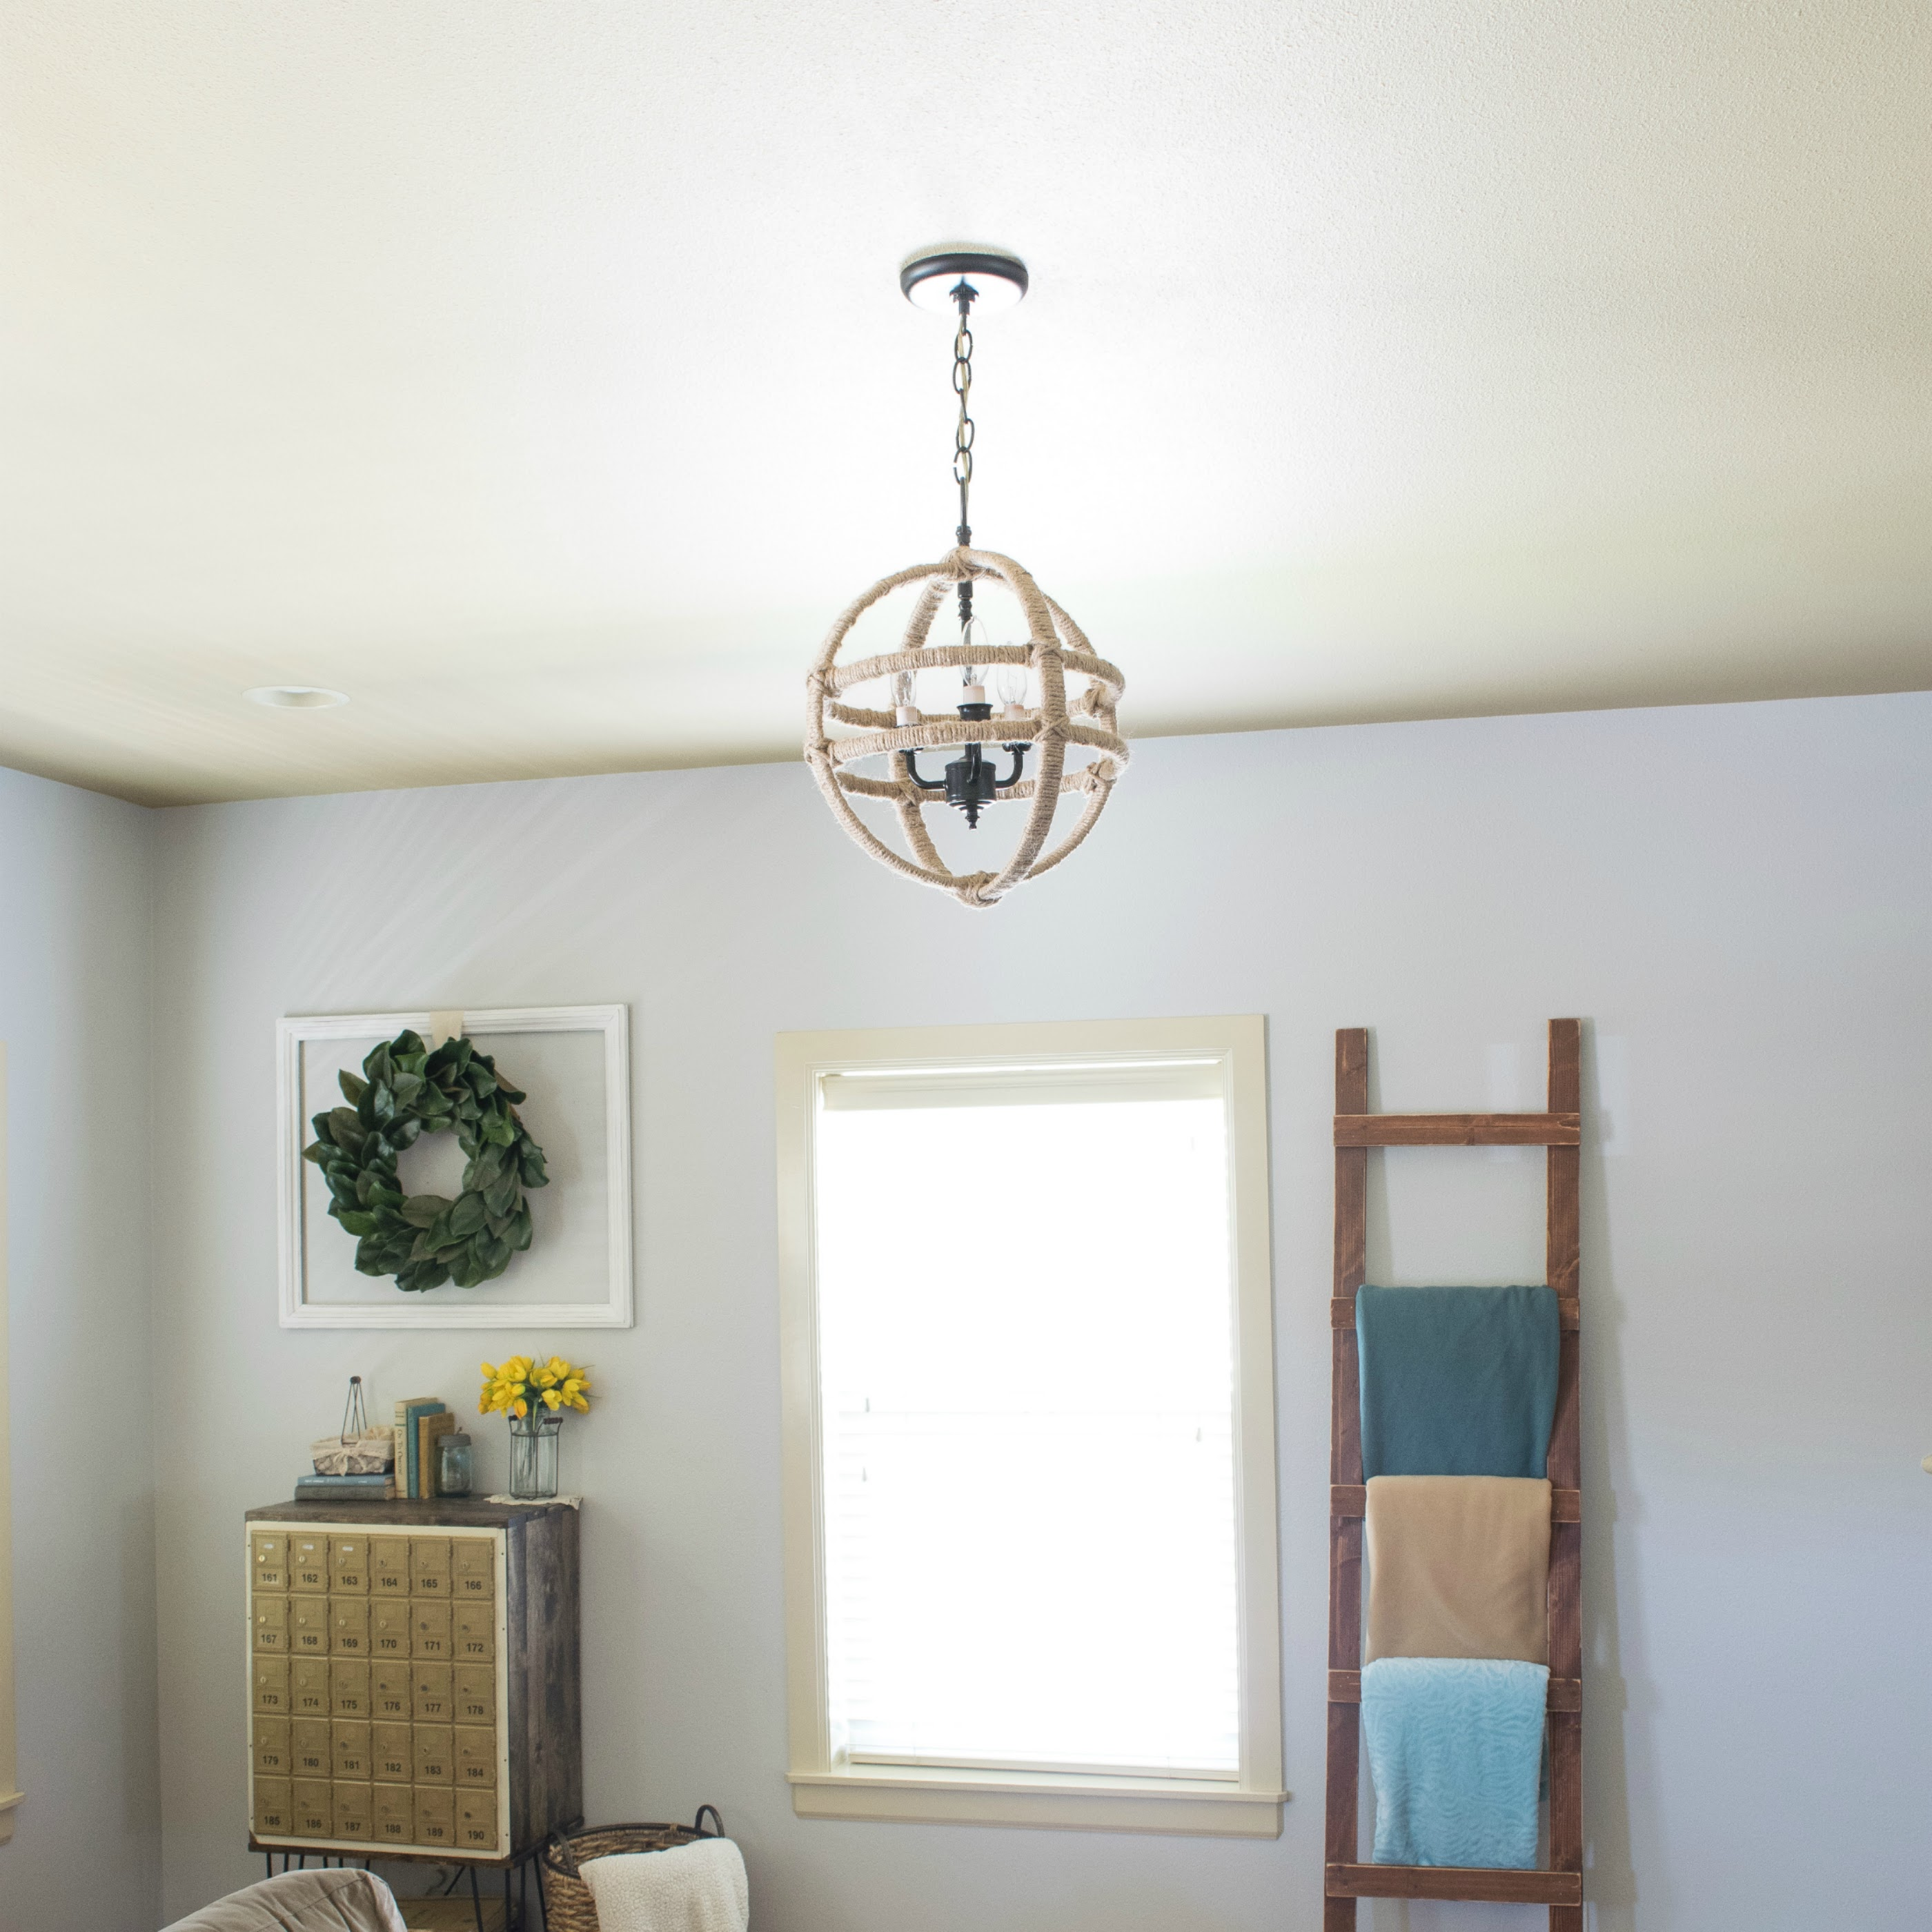 Cheap and easy diy twine orb chandelier dwelling in happiness cheap and easy diy twine orb chandelier aloadofball Gallery